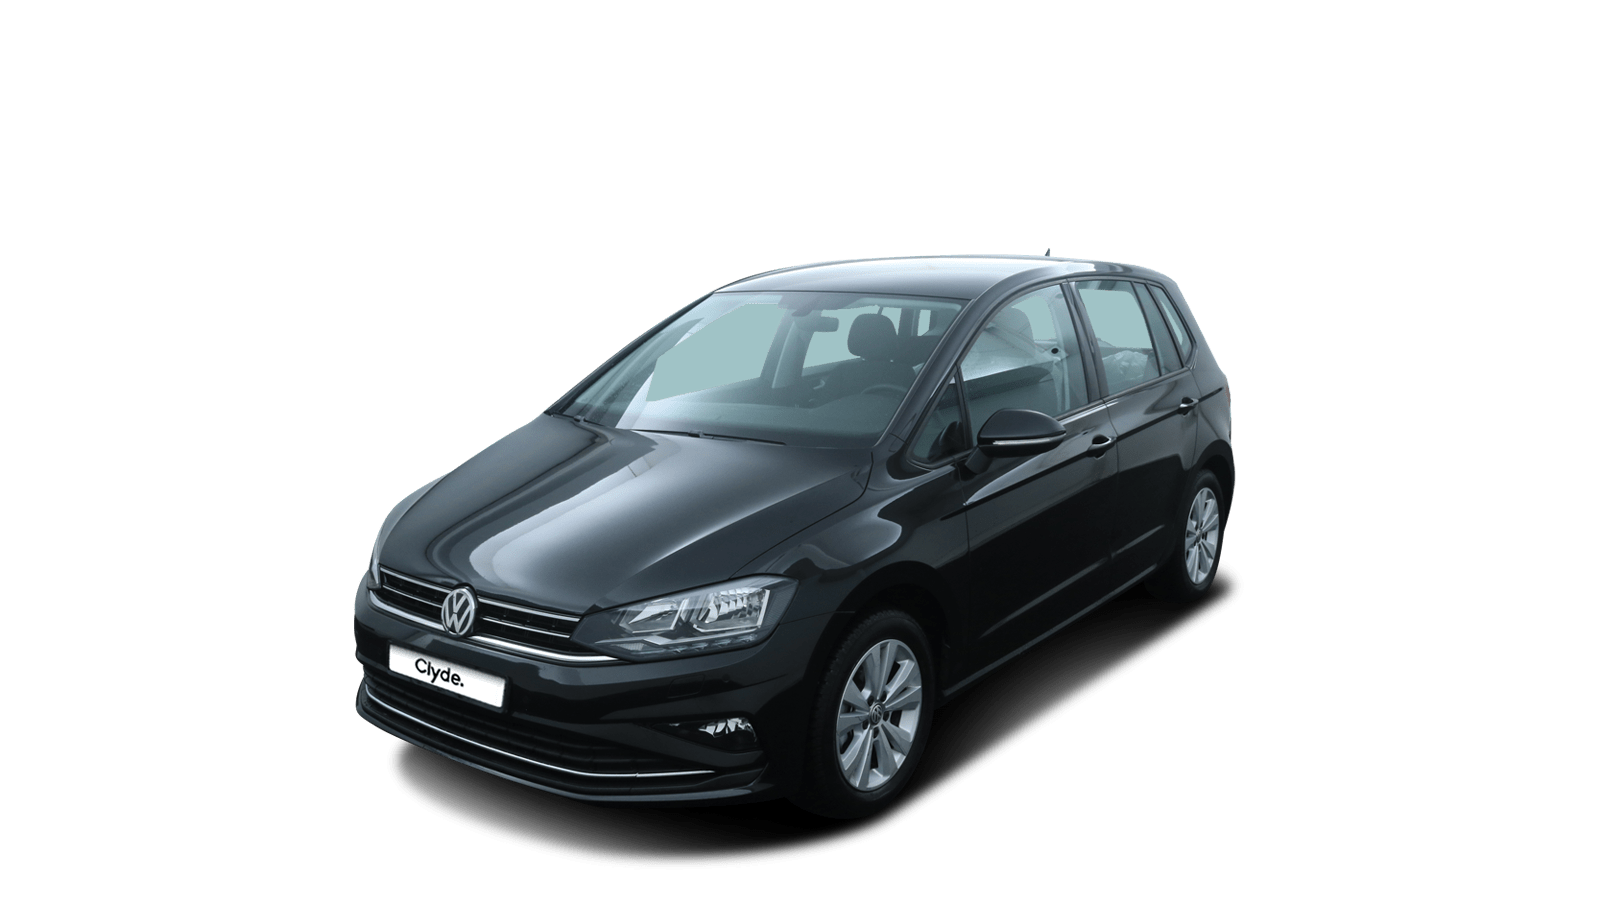 VW Golf Sportsvan Black front - Clyde car subscription